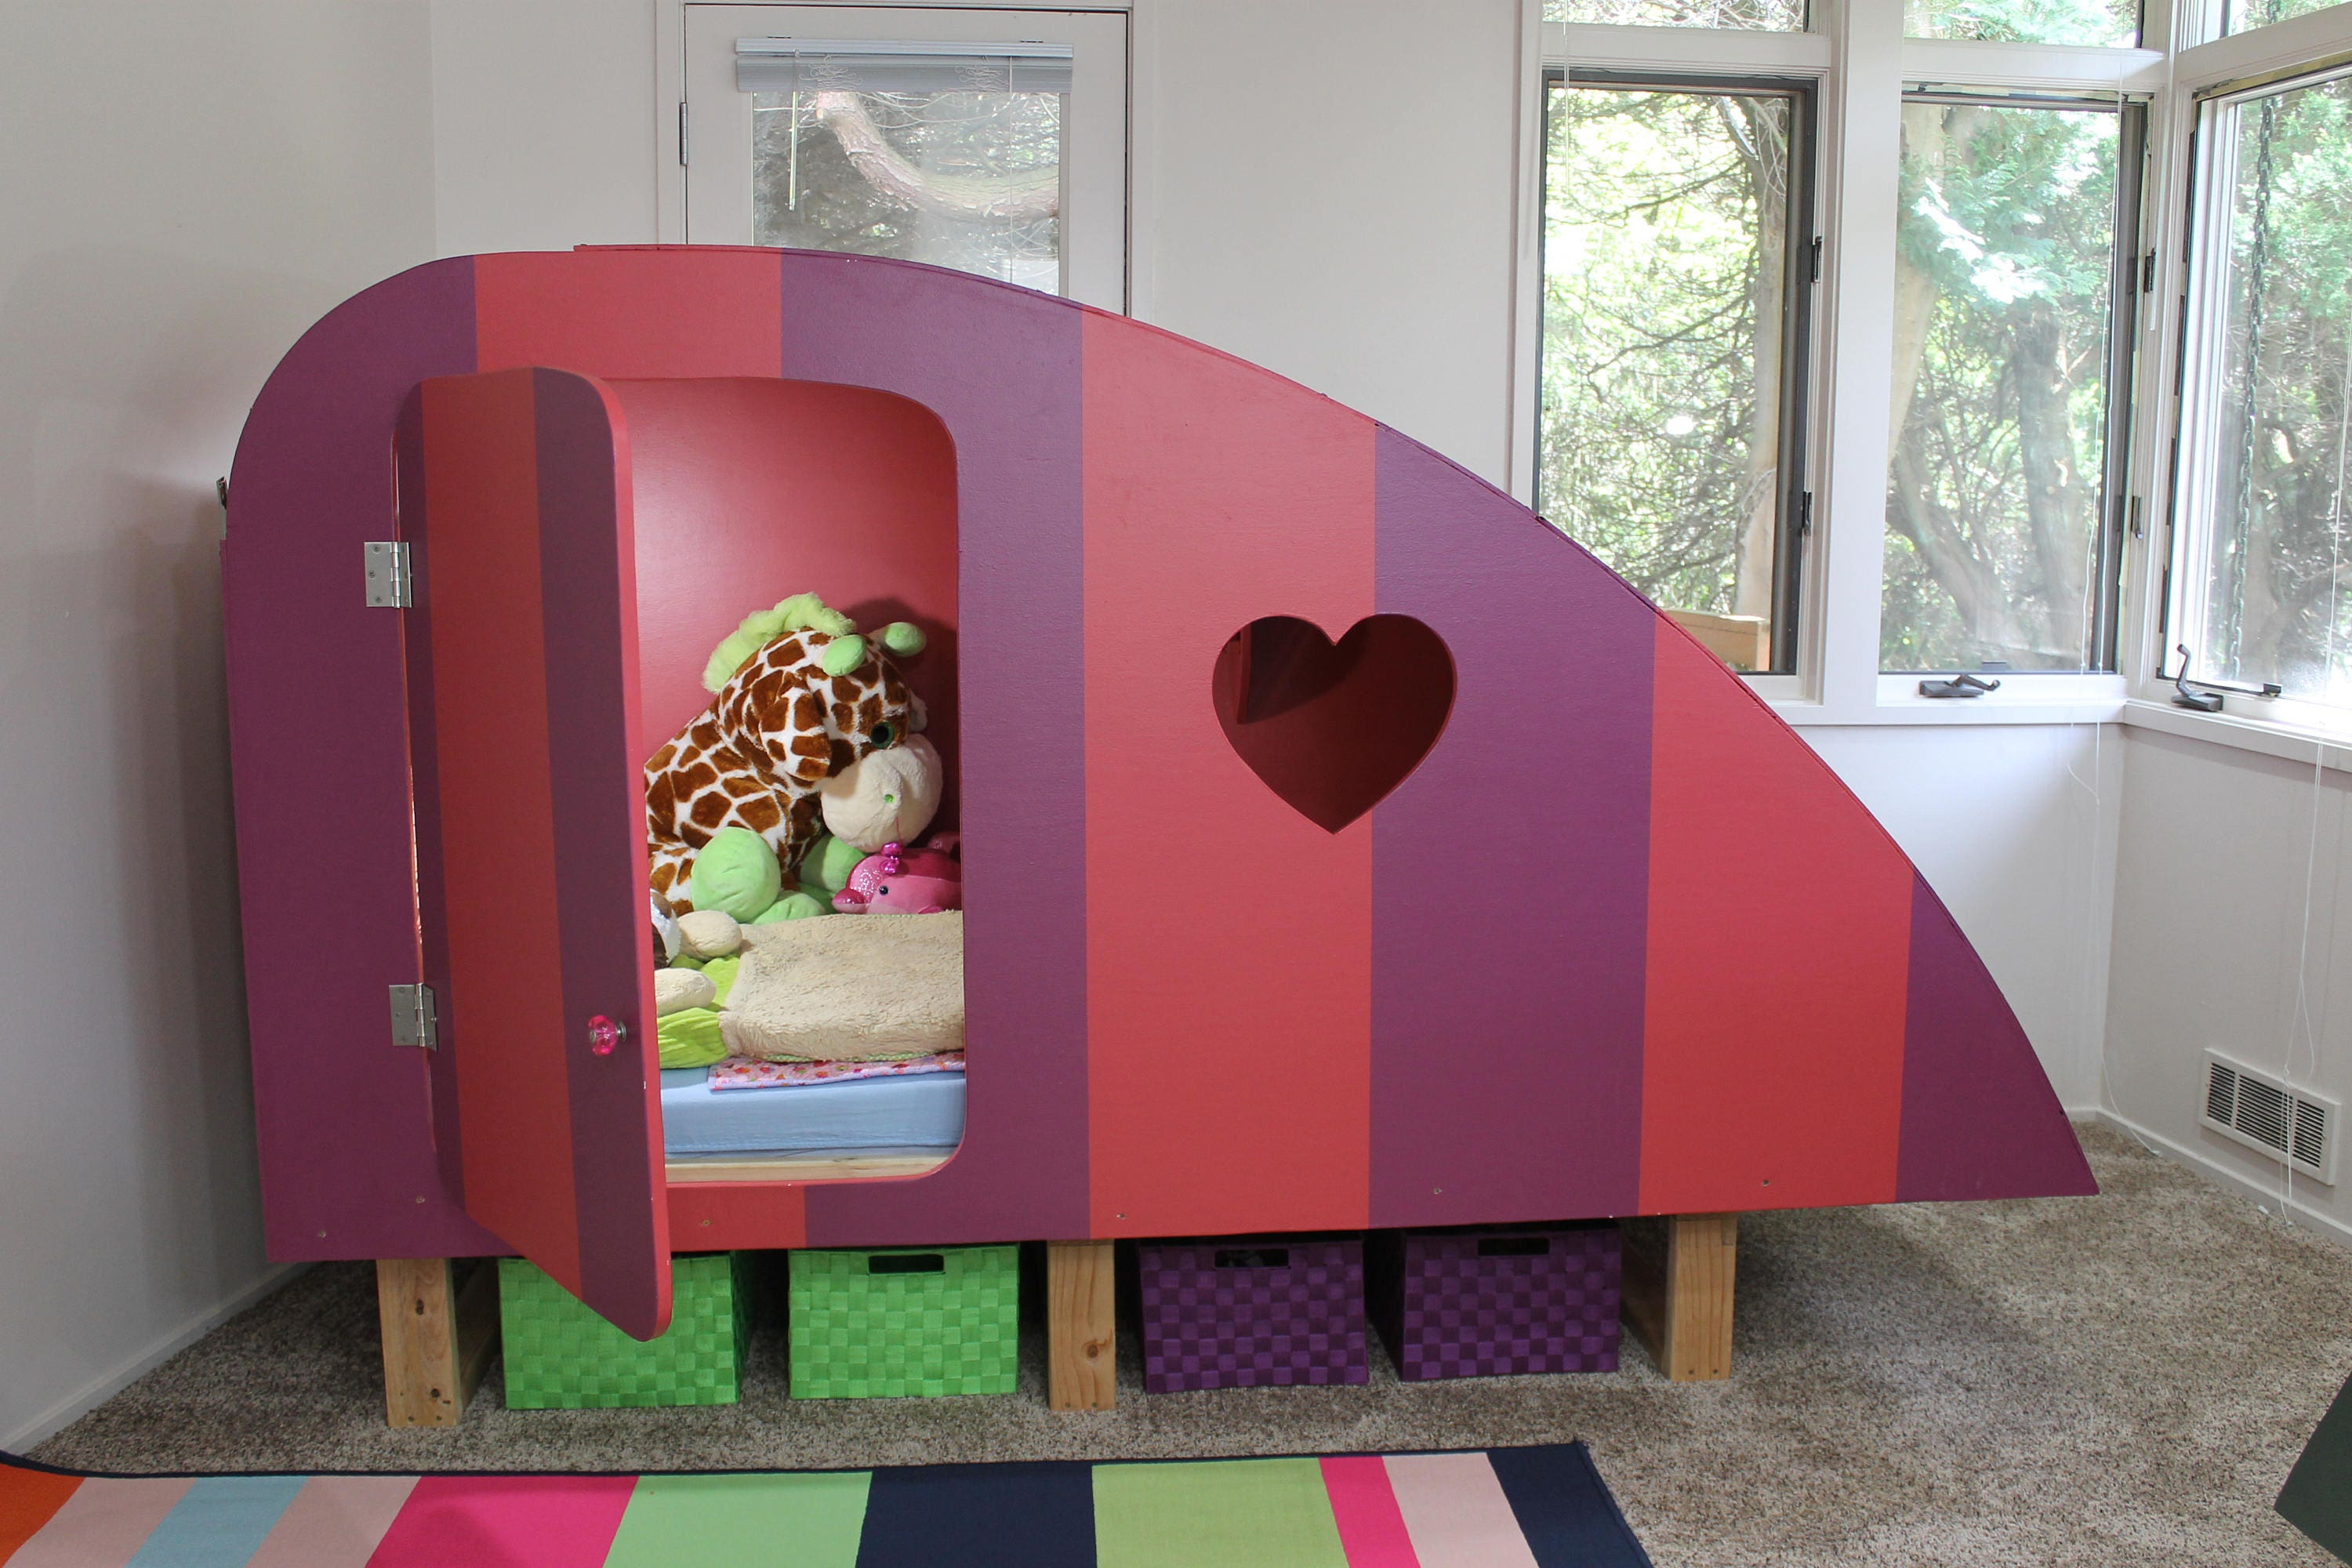 Kids Playhouse Kids Bed Playhouse Bed Twin Bed Plans Girl Bed Boy Bed Childrens Bed